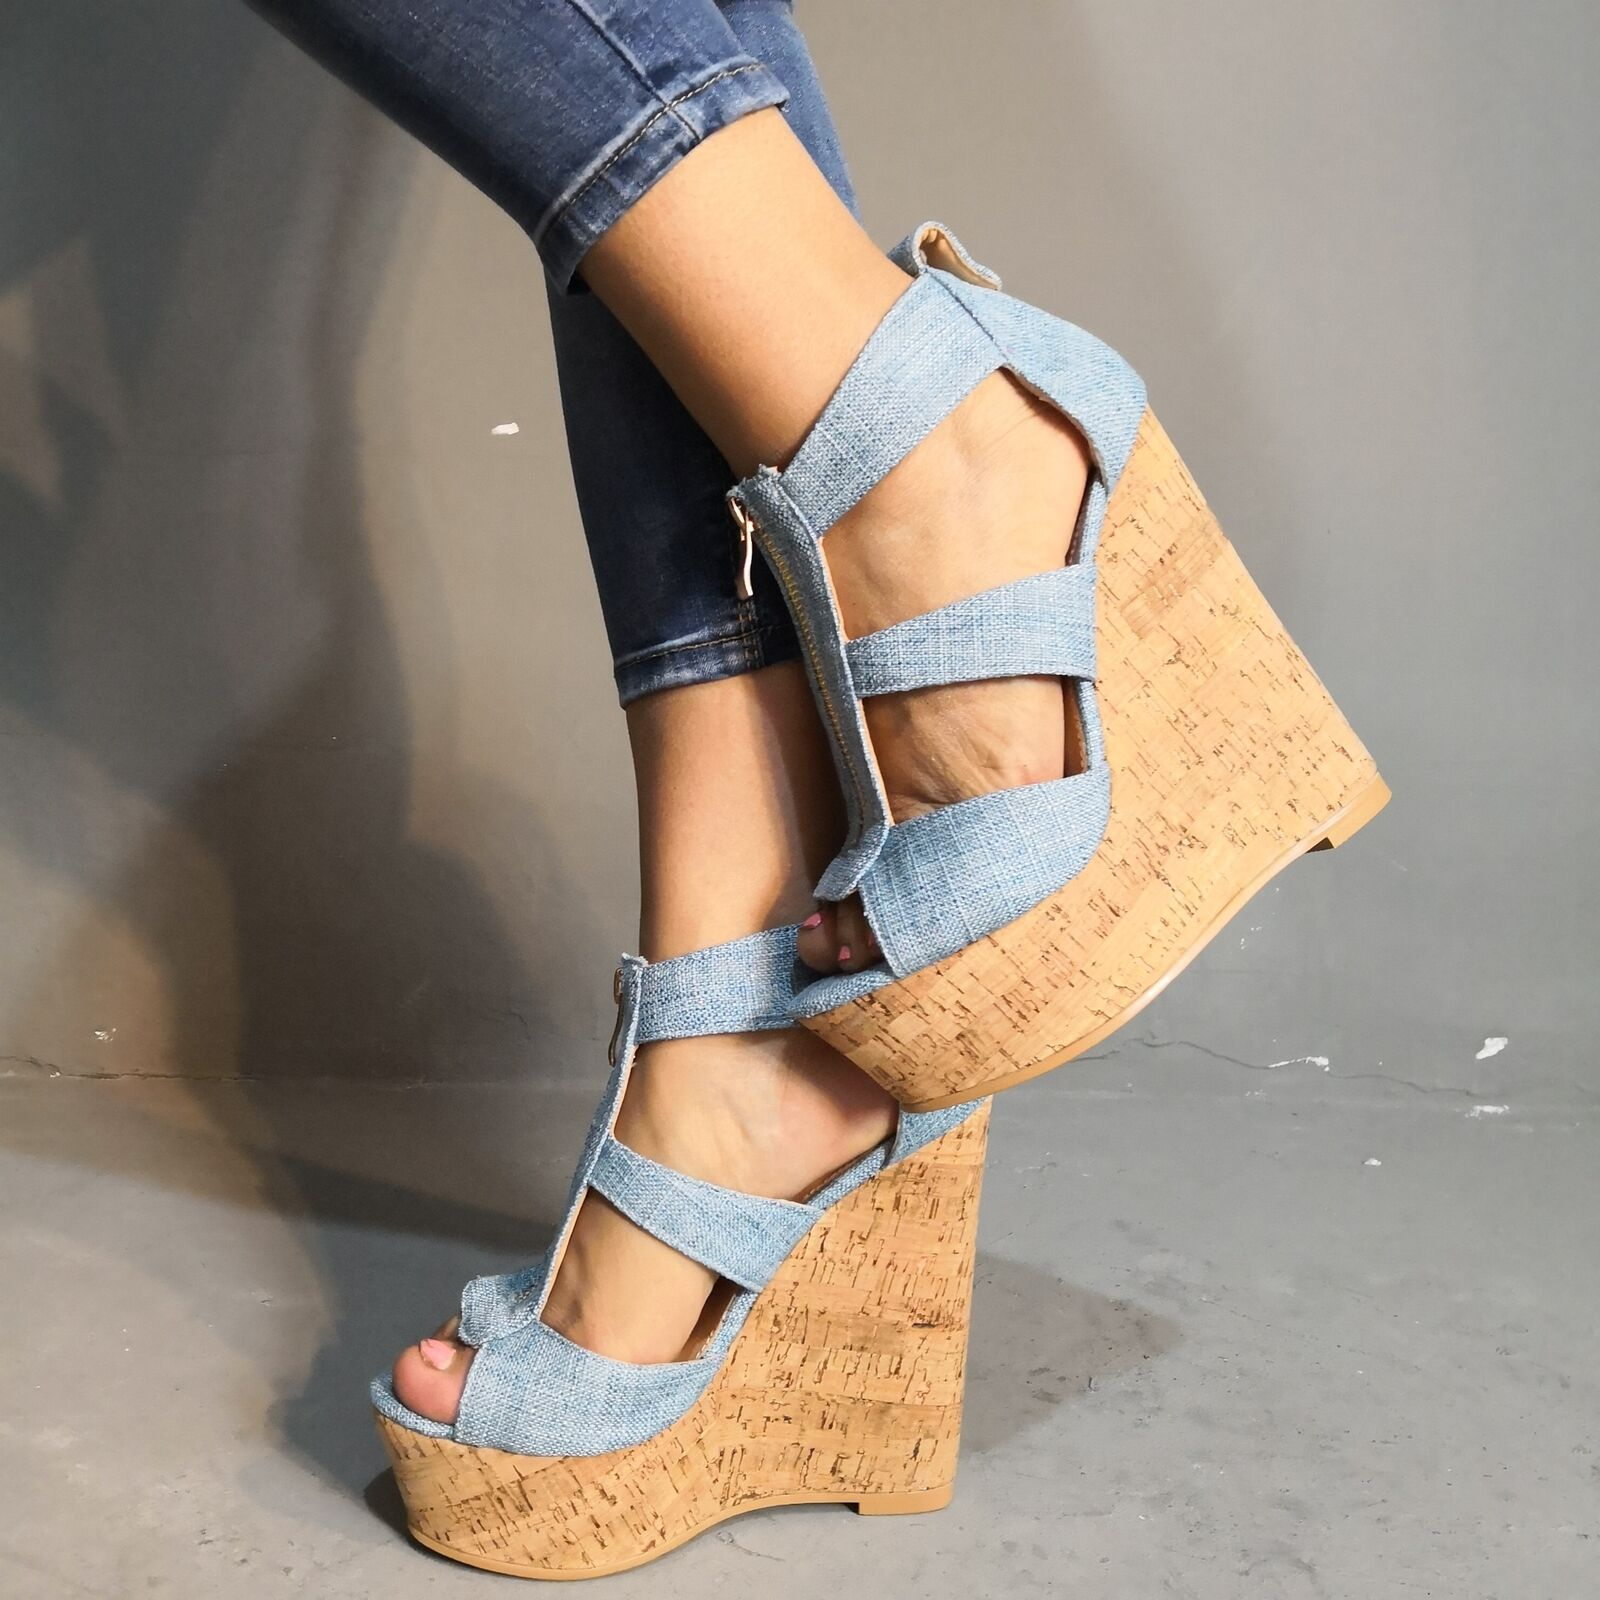 Summer Sexy High Heels Wedge Denim bluee Sandals Pumps Peeptoe Platform shoes